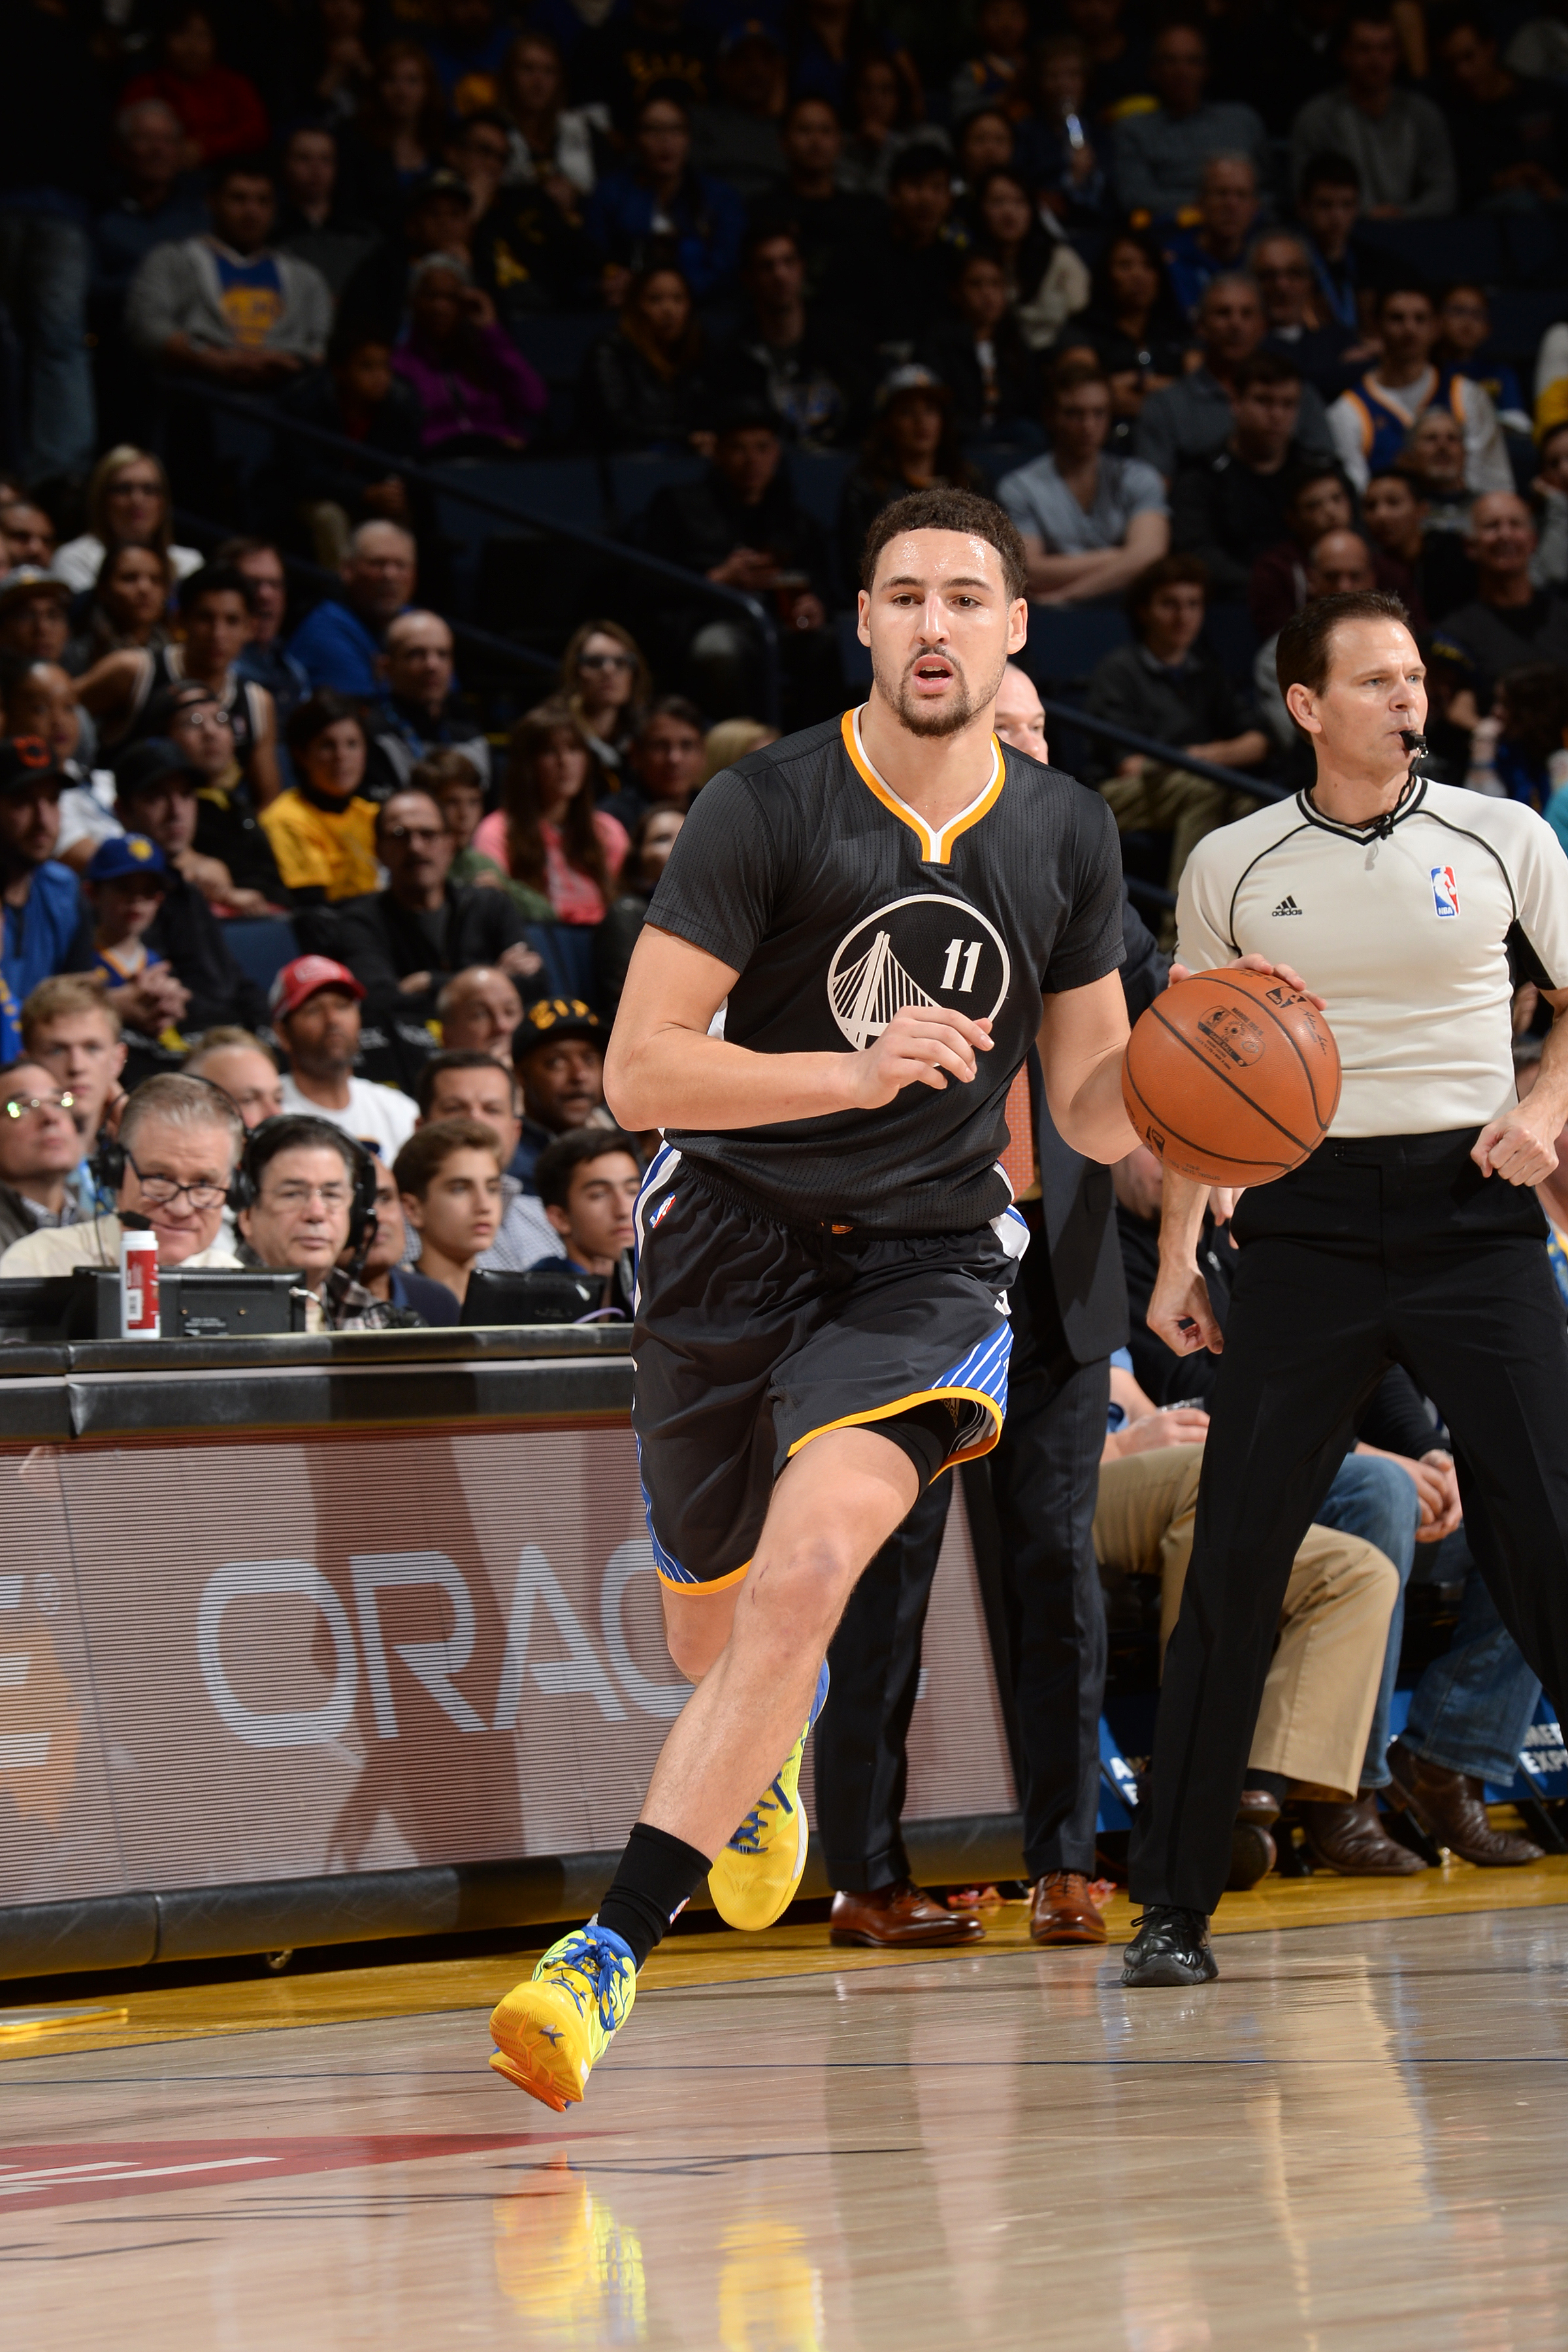 OAKLAND, CA - JANUARY 2: Klay Thompson #11 of the Golden State Warriors handles the ball during the game against the Denver Nuggets on January 2, 2016 at ORACLE Arena in Oakland, California. (Photo by Noah Graham/NBAE via Getty Images)